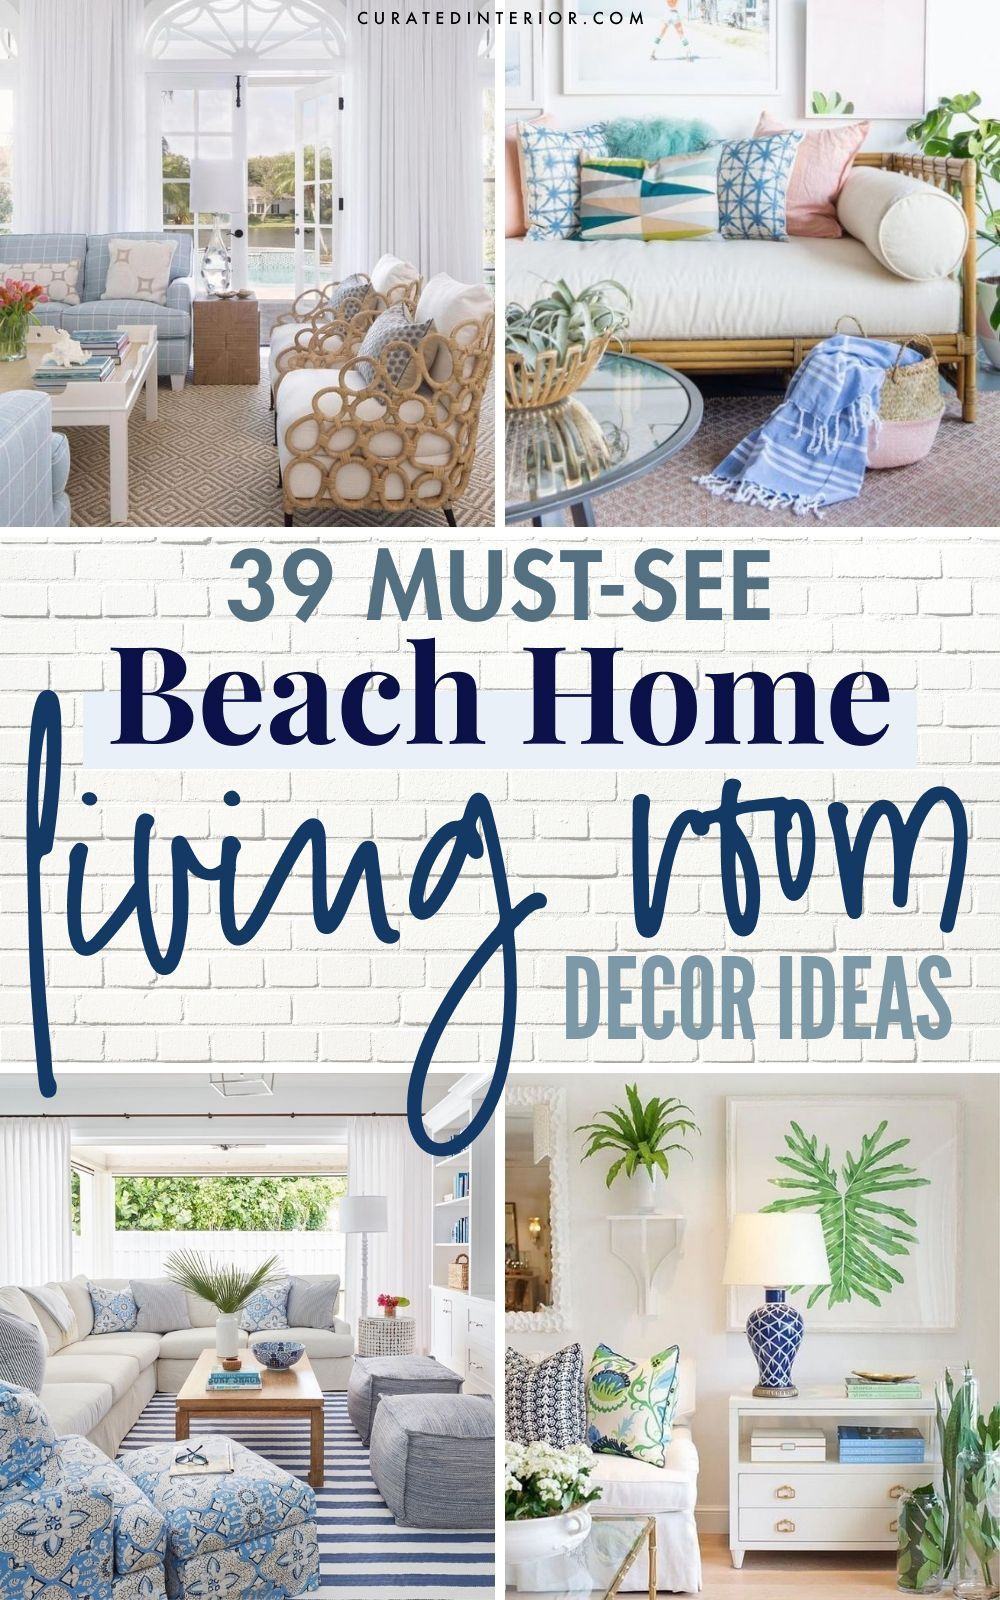 39 Coastal Living Rooms To Inspire You In 2021 Coastal Living Rooms Coastal Style Living Room Coastal Living Beach home living room decorating